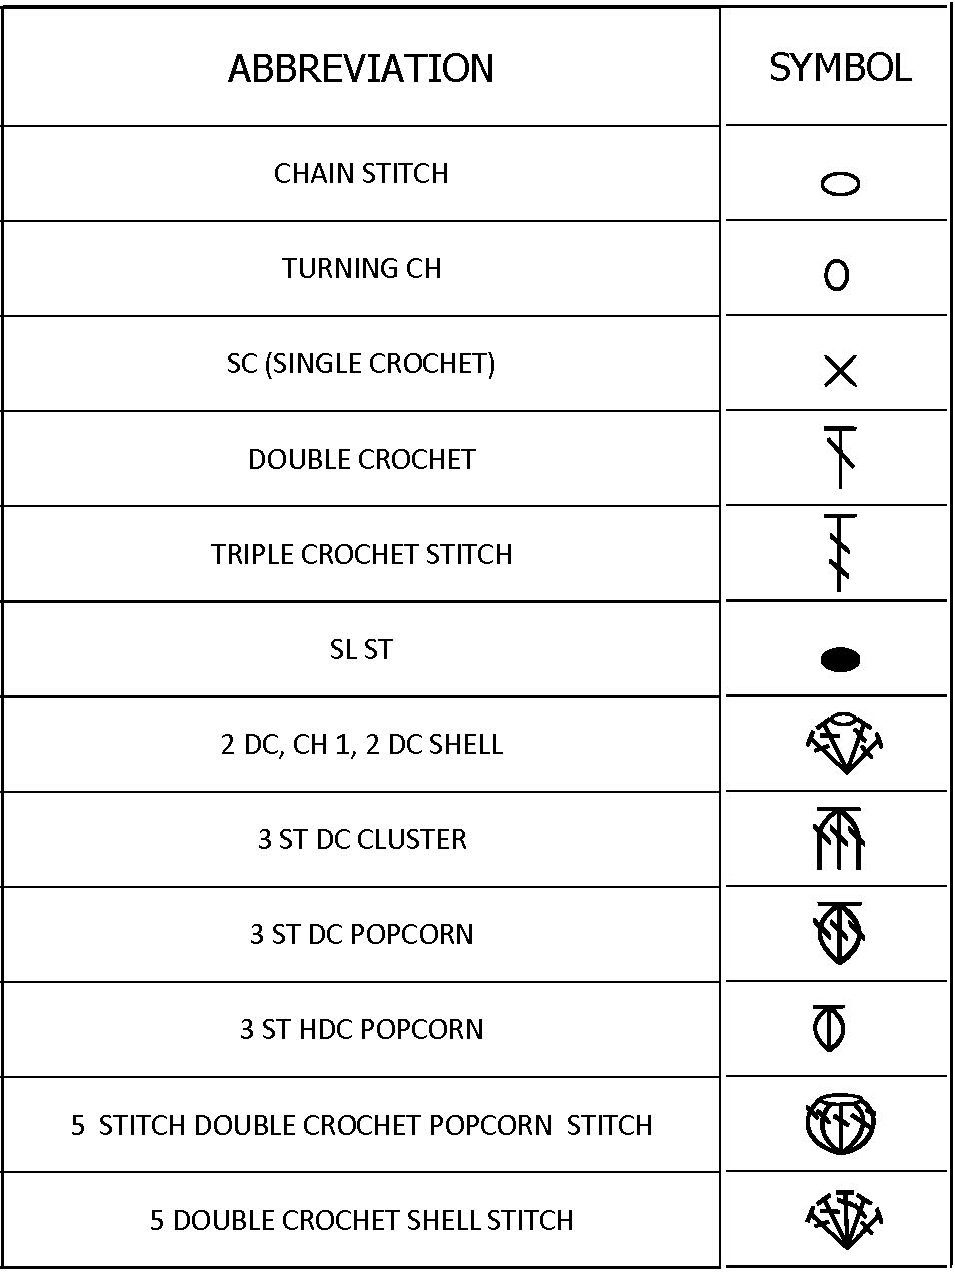 Russian Knitting Chart Symbols : Crochet knit unlimited symbols language